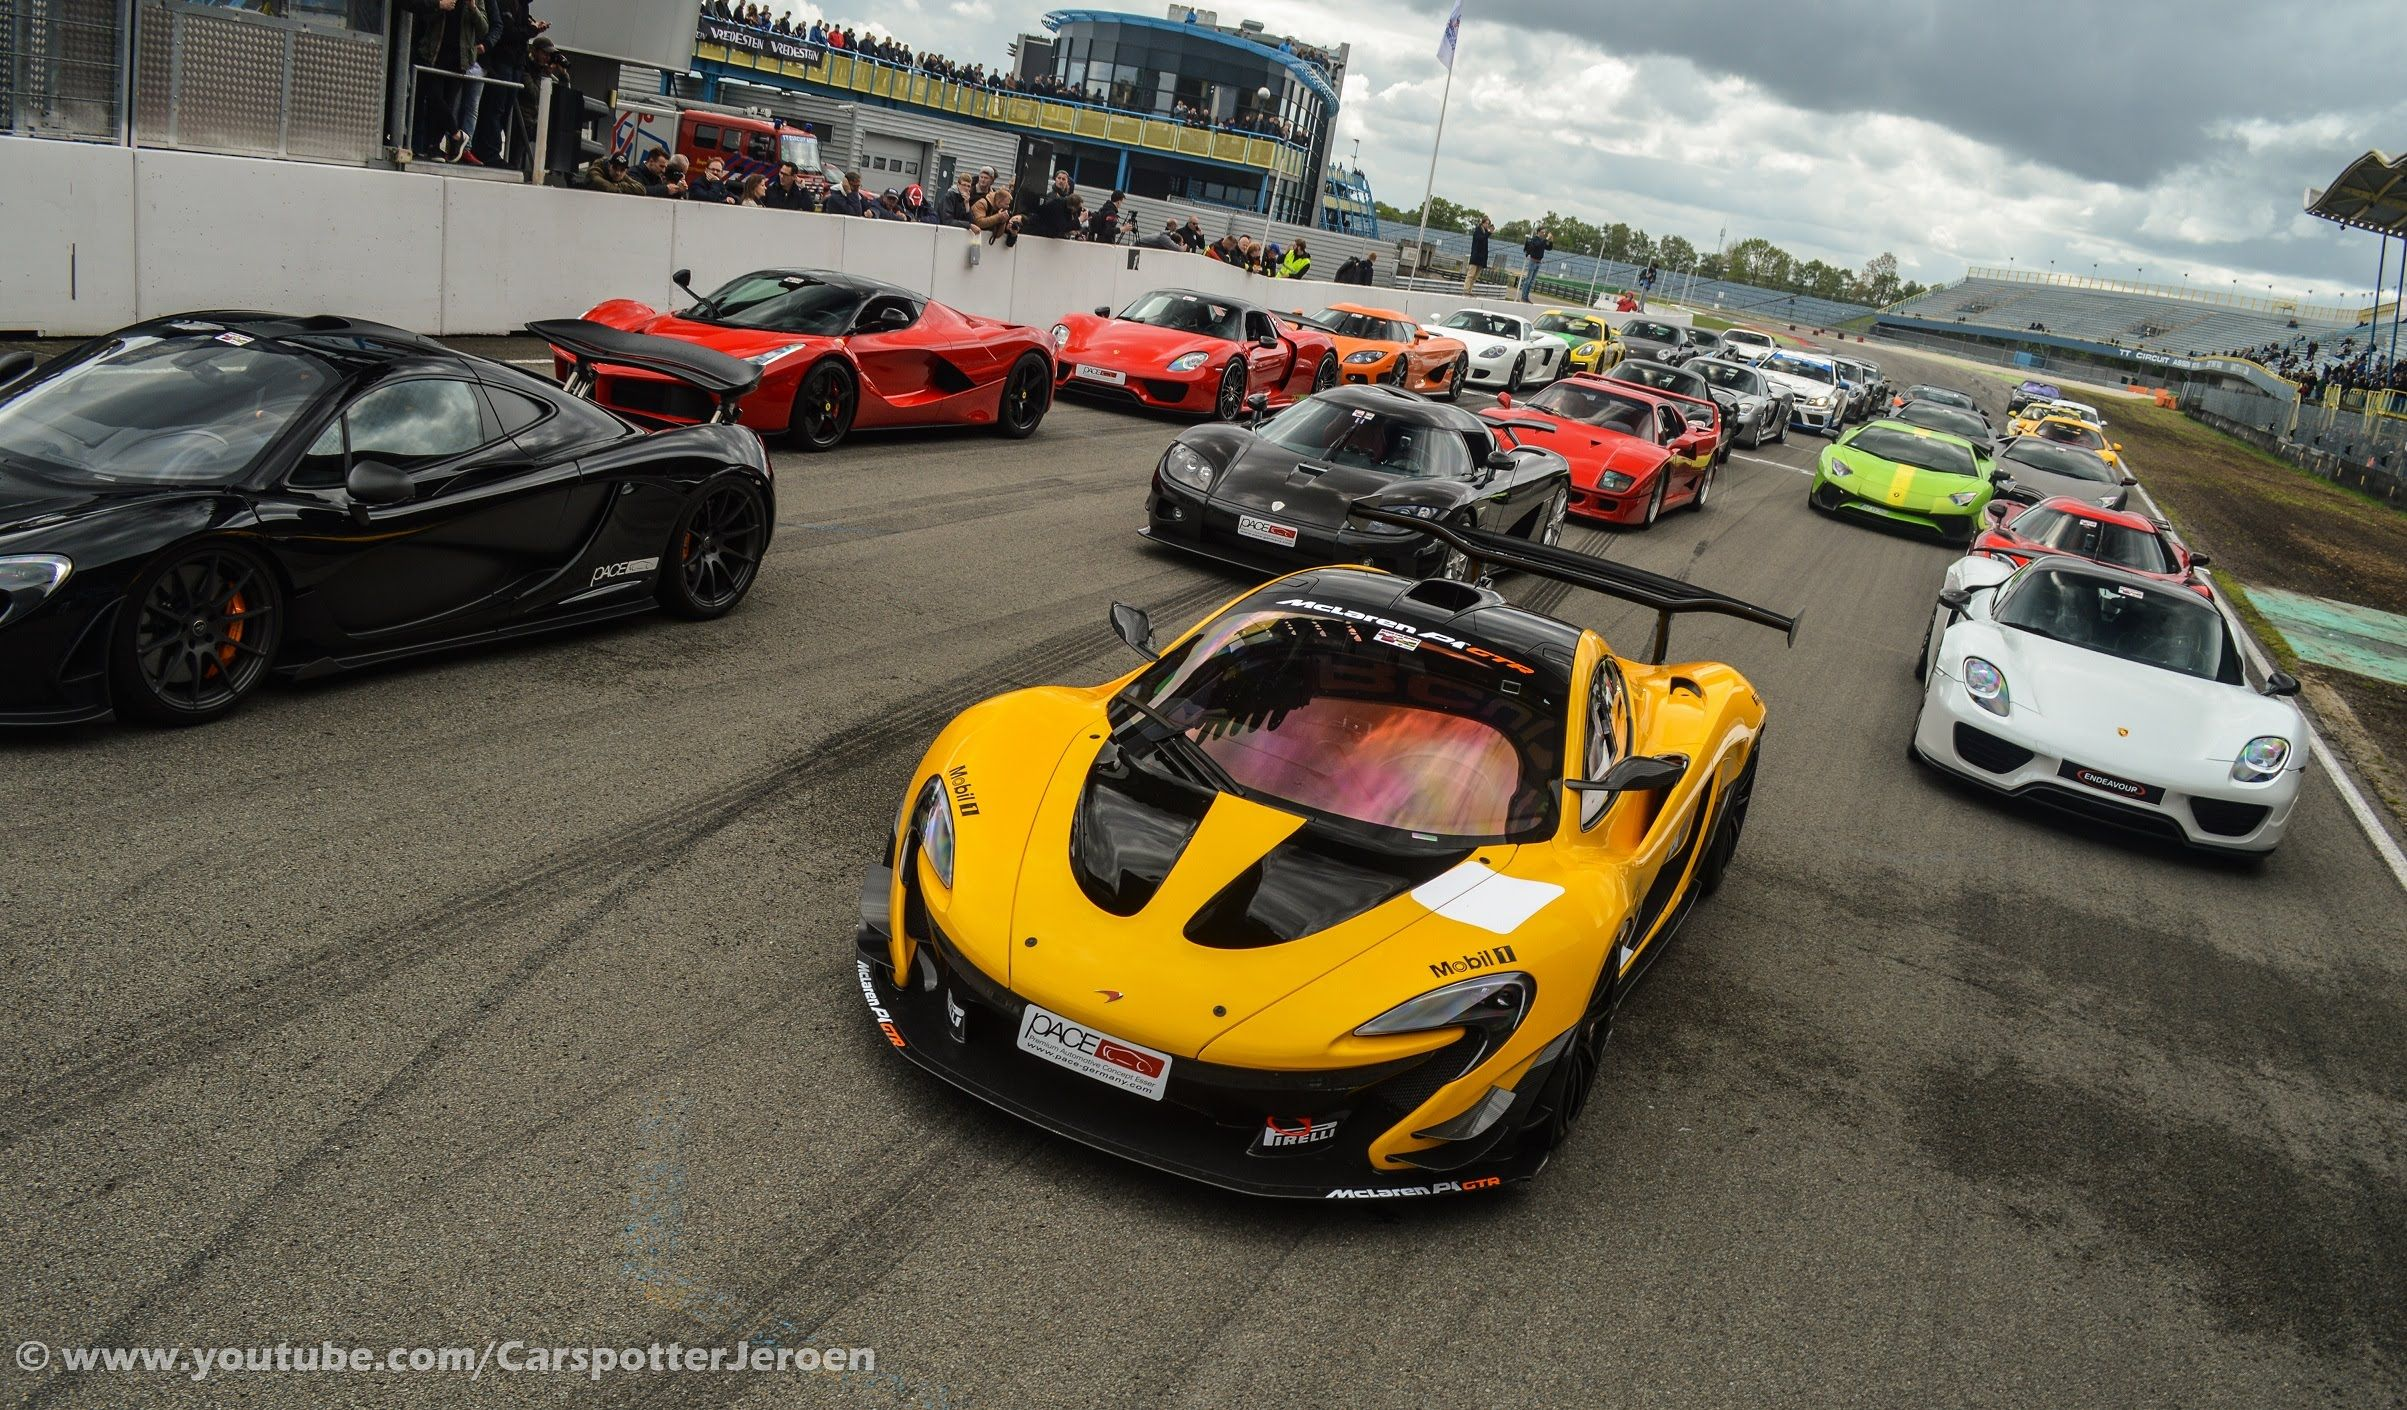 Supercar Sunday 2016 Ena Apo Ta Megalytera Supercar Event Automotors Gr Super Cars Netherlands Sports Car